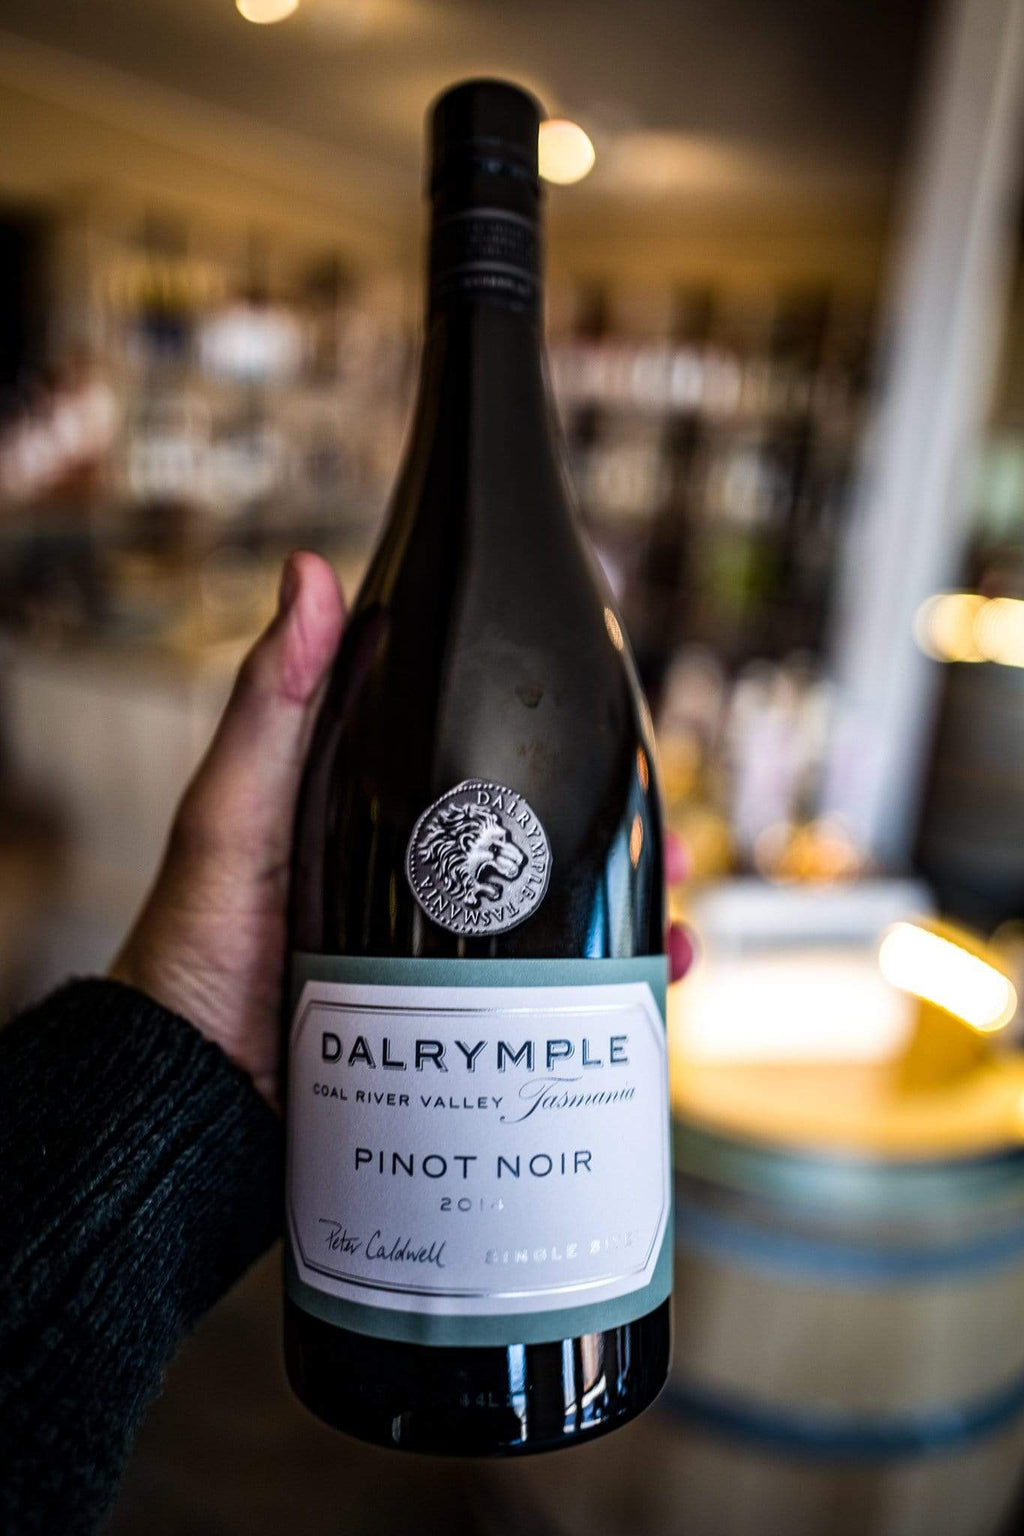 Dalrymple Rødvin Dalrymple Single Site Coal River Valley Pinot Noir 2014